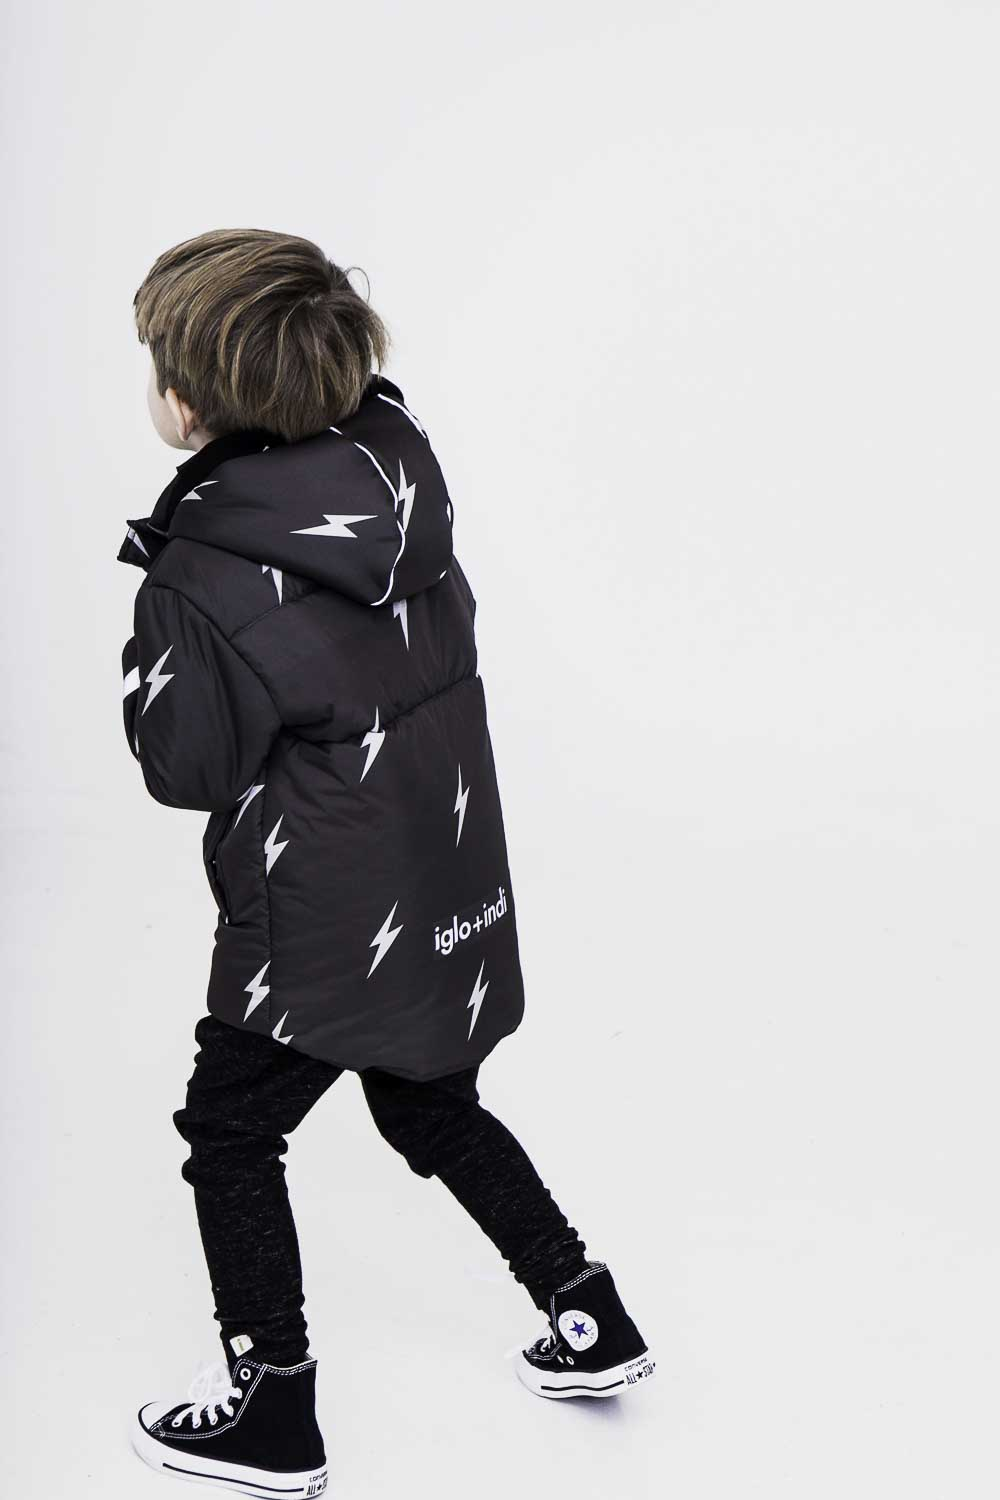 iglo-indi-winter-2017-2018-kidsfashion-trends-aw-kindermode-12